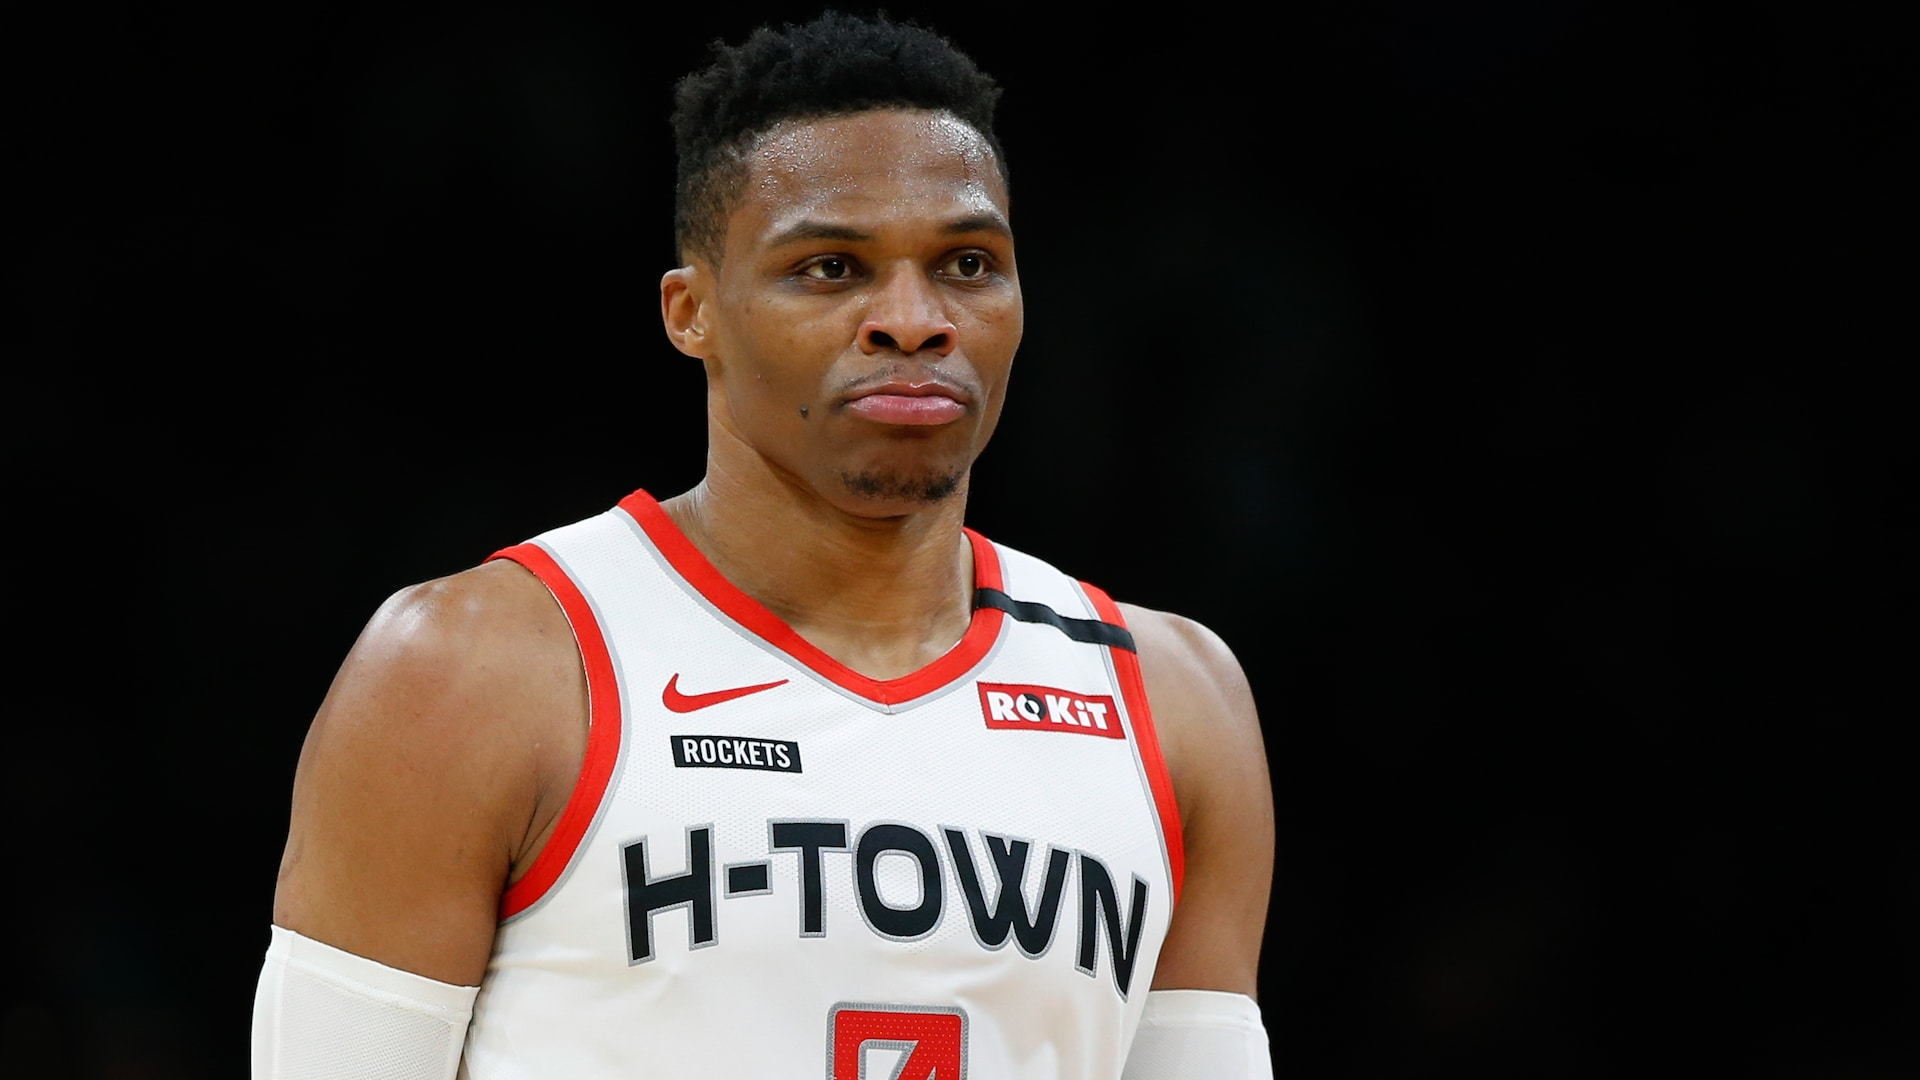 Kia MVP Ladder mailbag: Can Russell Westbrook move up in the chase?